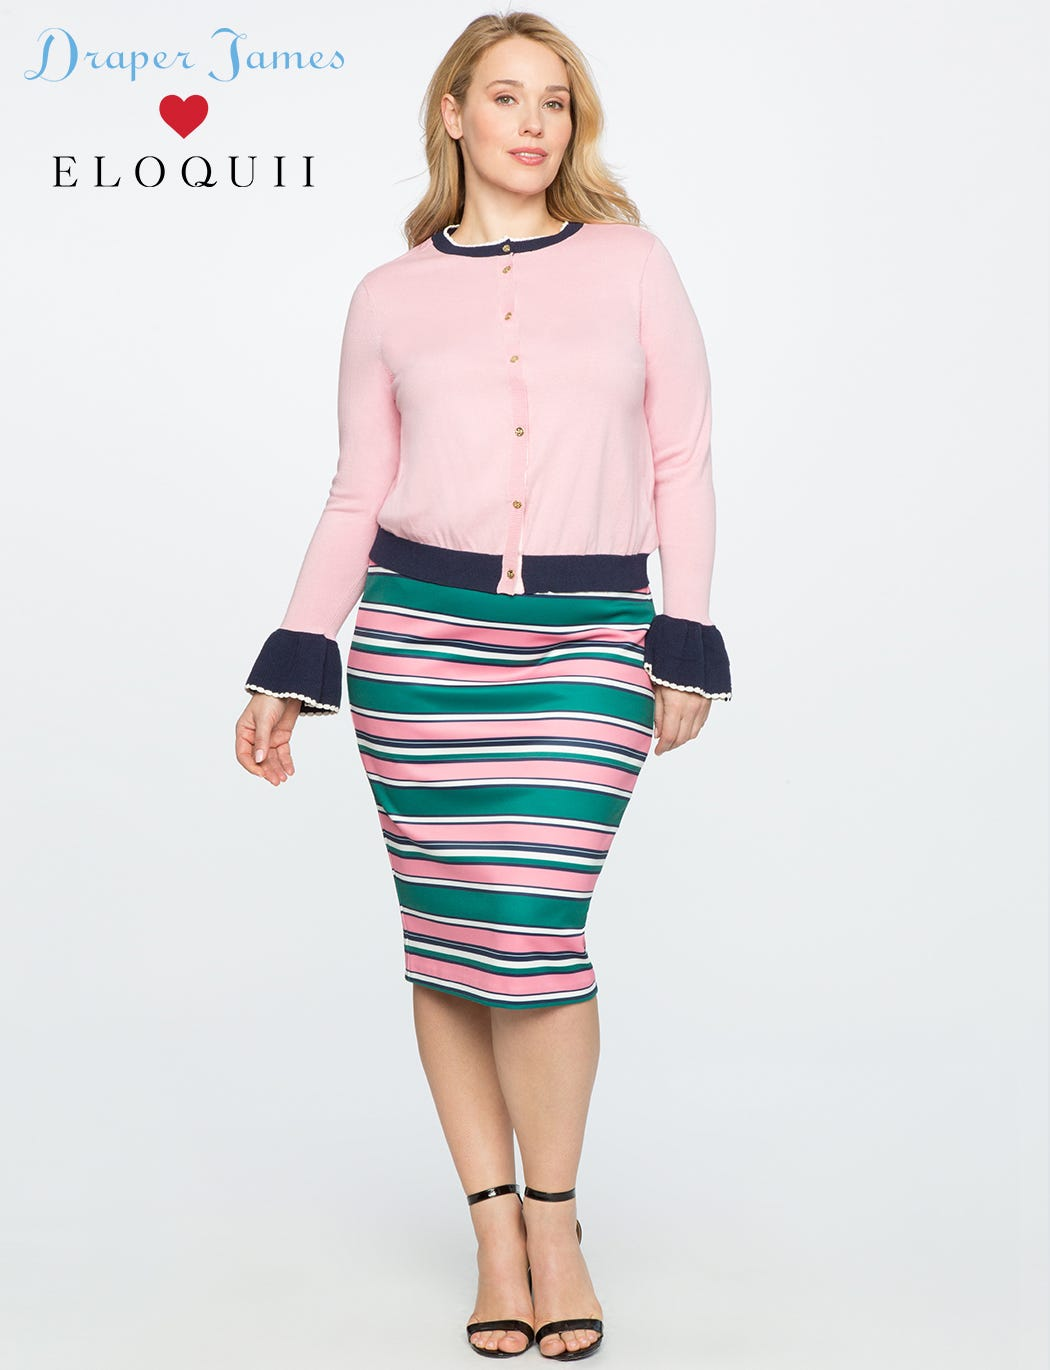 761ce508ac45a Draper James And Eloquii Plus Size Collection